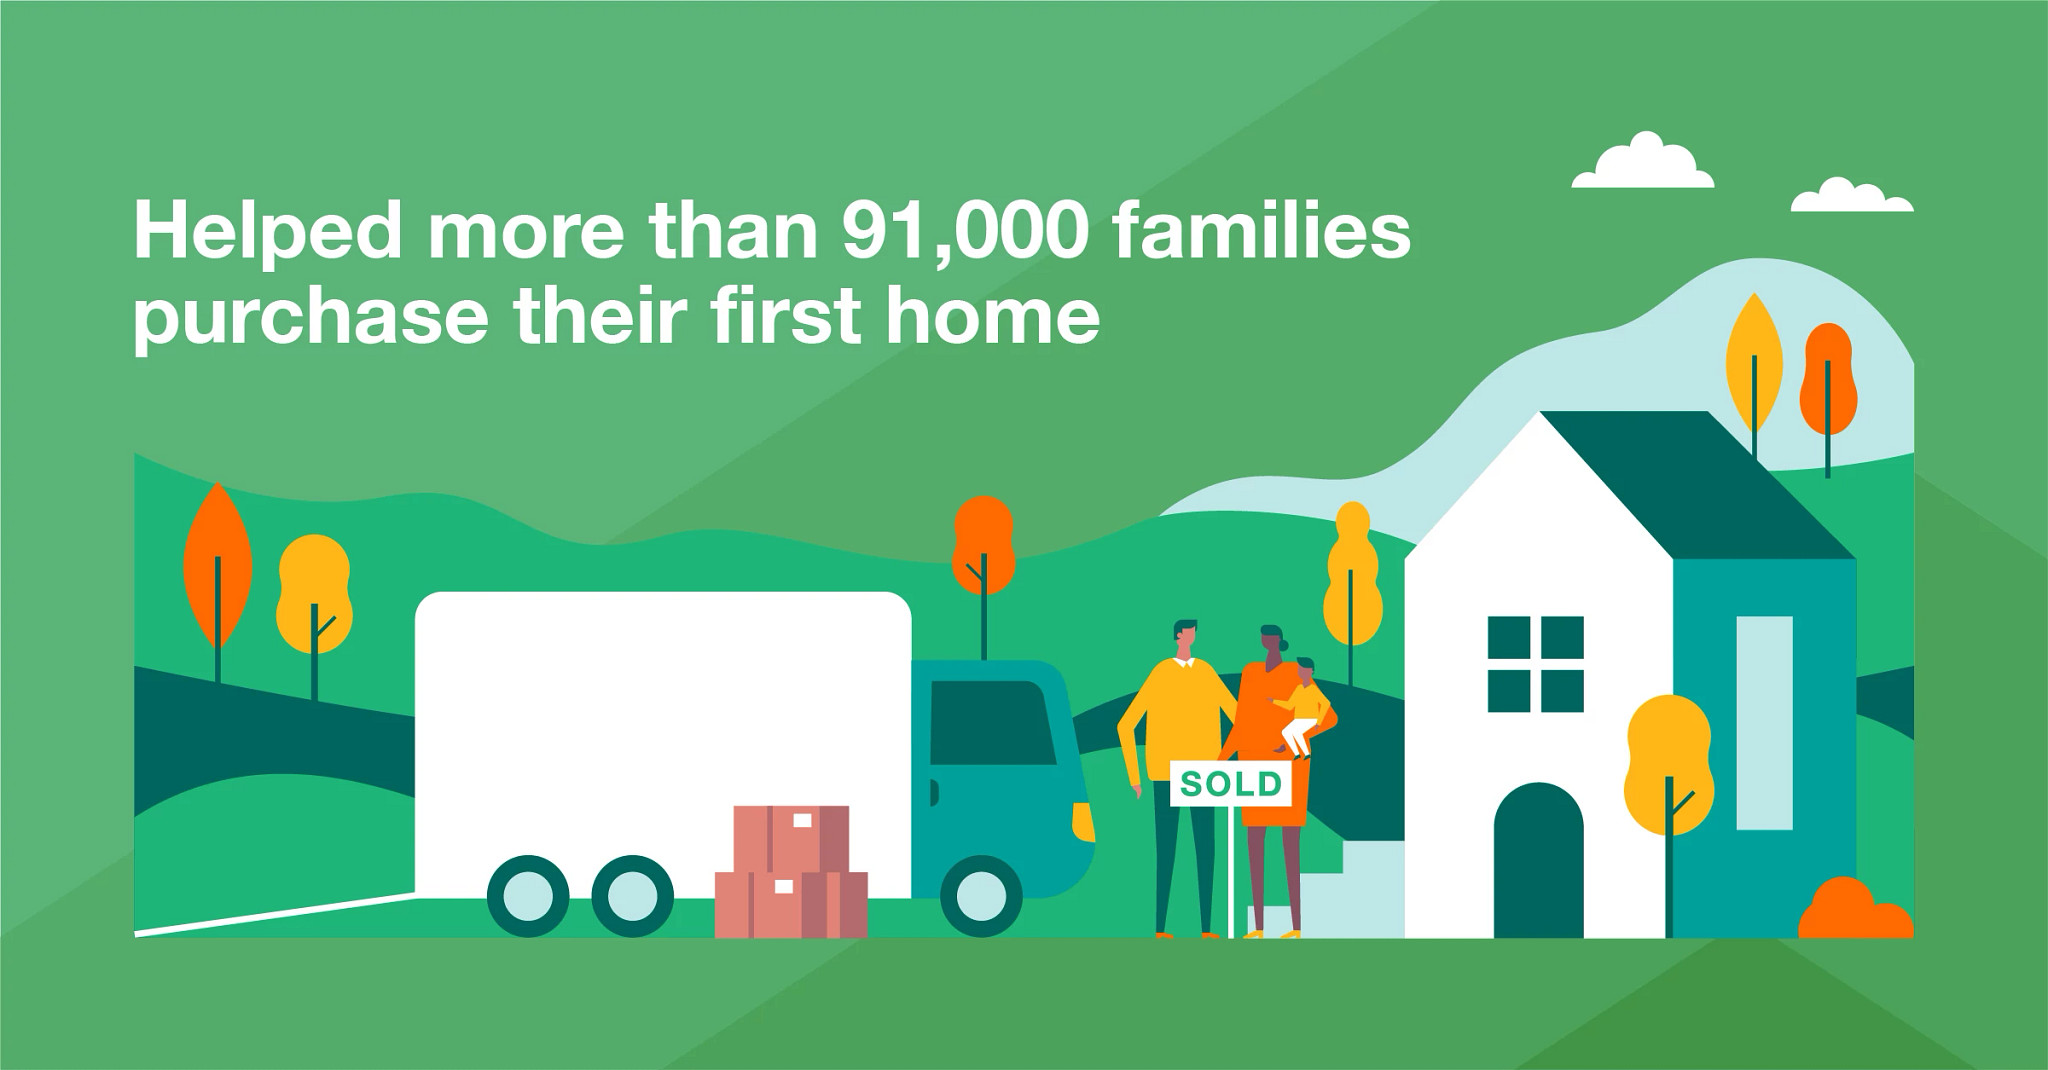 Helped more than 91,000 families purchase their first home.